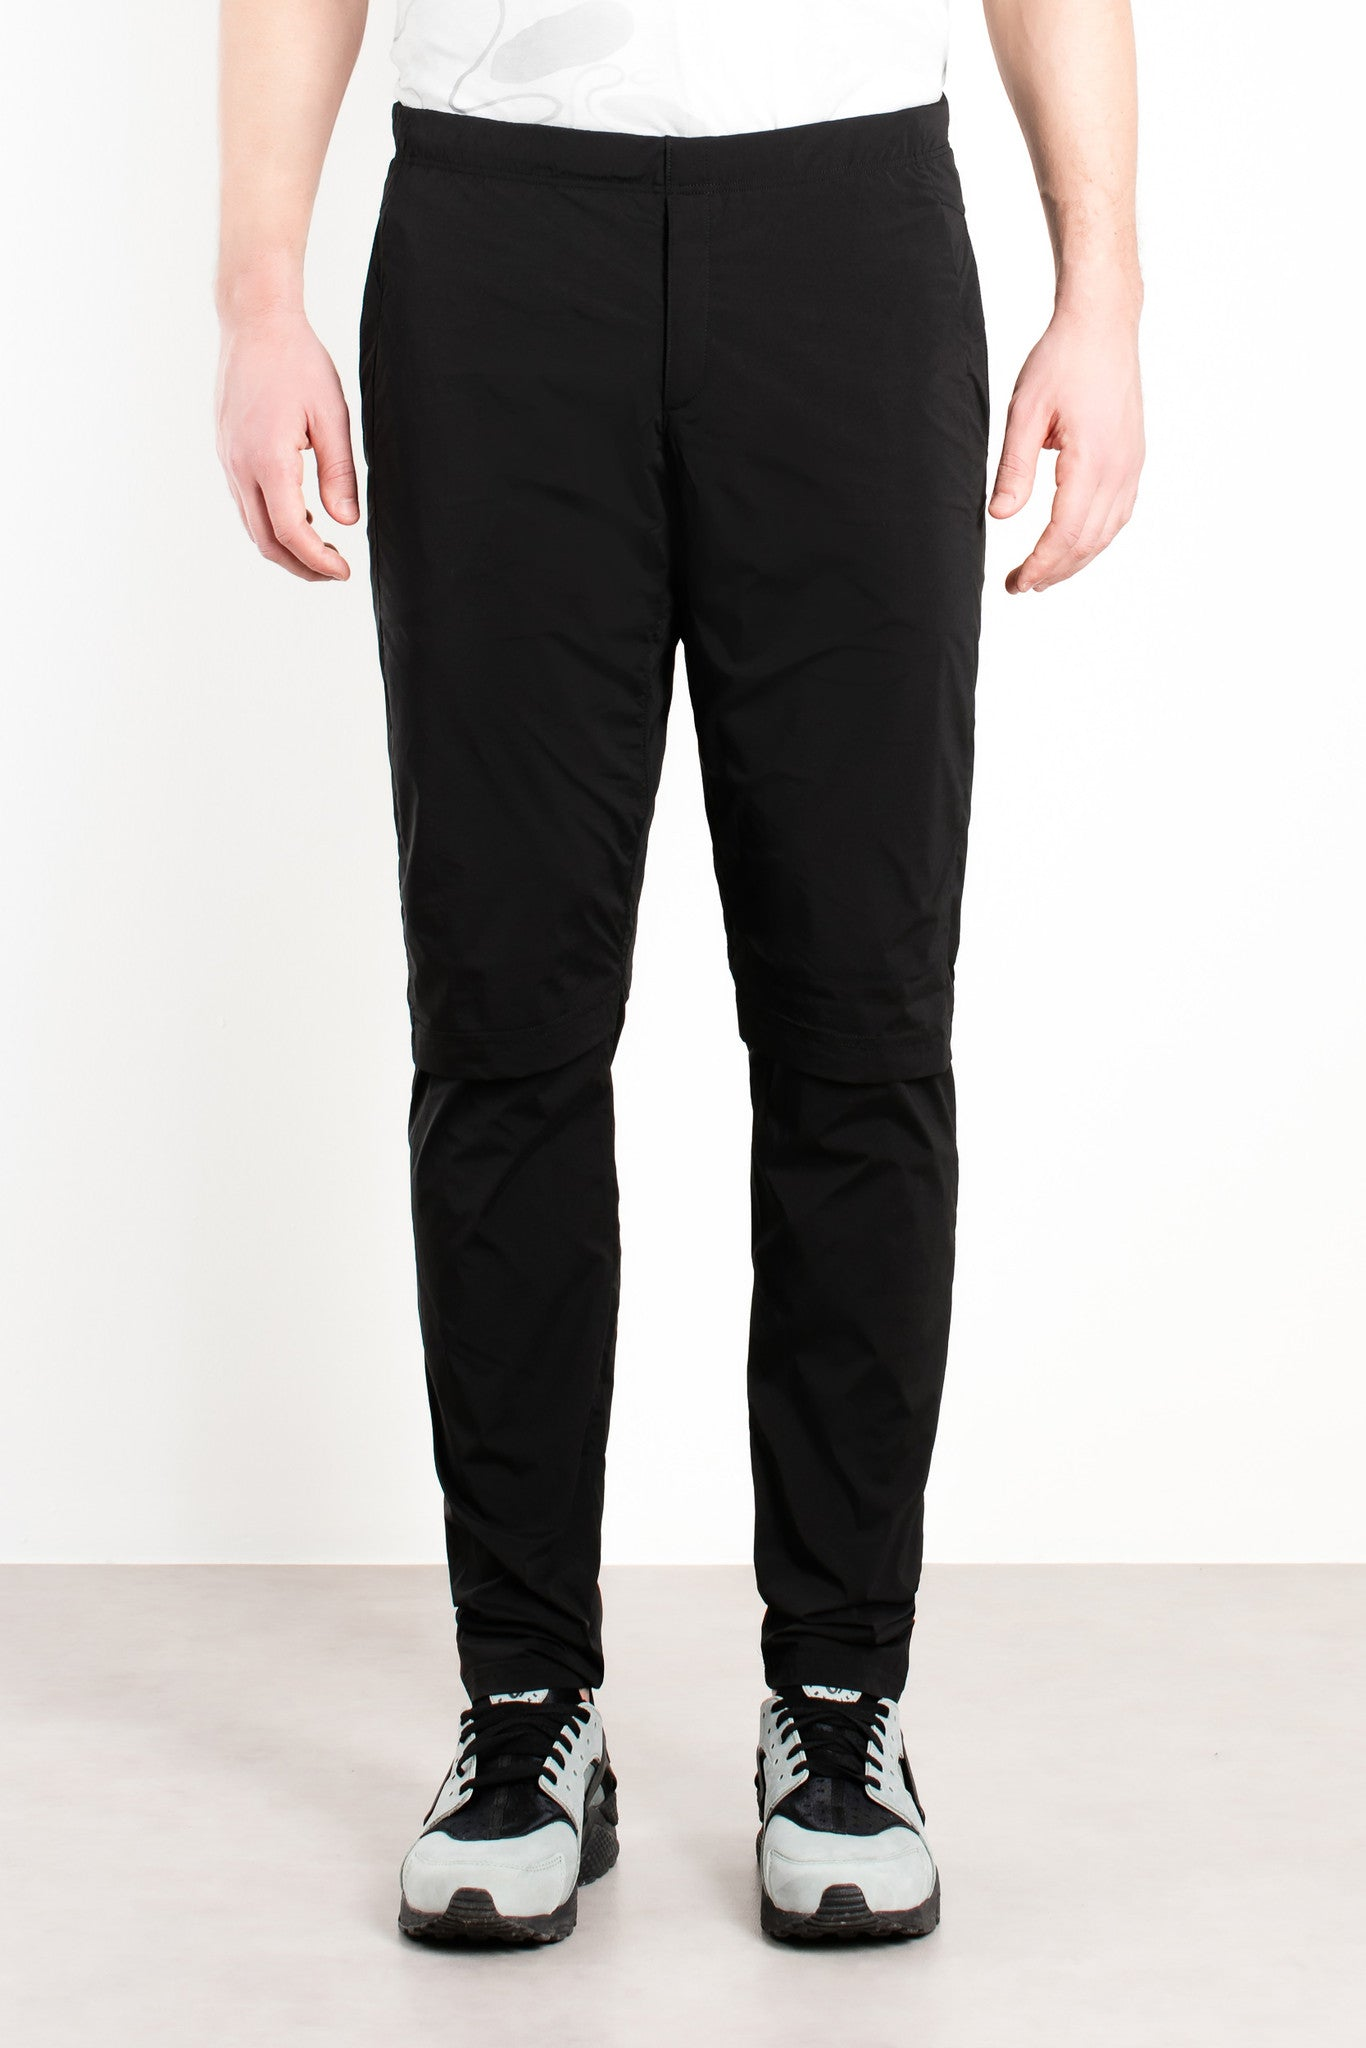 Praga Long Sleek Pants / Black